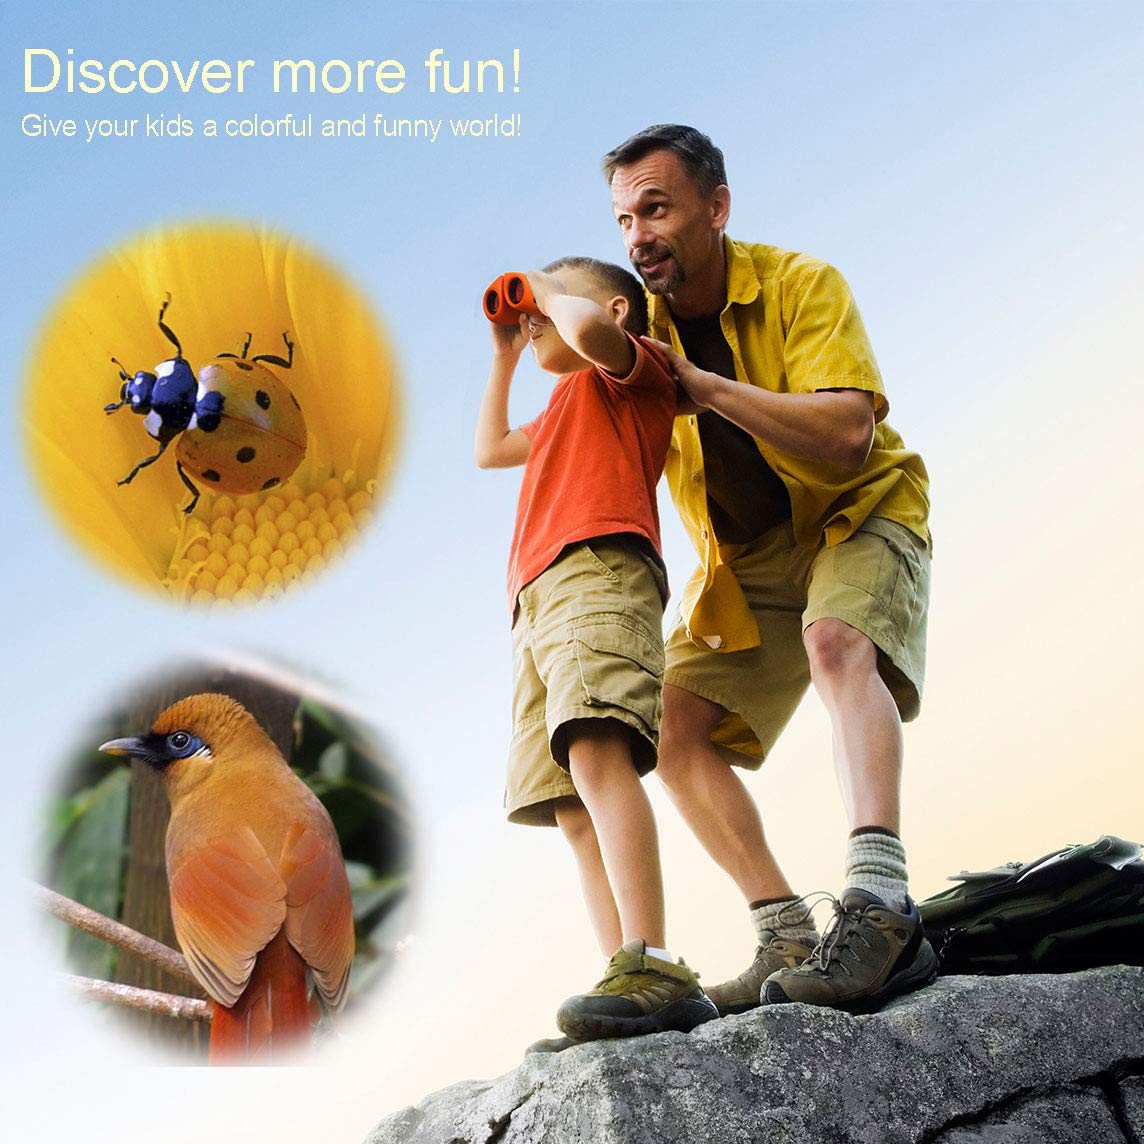 Happy Gift Toys for 3-12 Year Old Girls, Walkie Talkies for Kids Toys for 3-12 Year Old Boys Mini BinocularsToys Gifts for Teen Boys Gifts for Teen Girls Birthday Gifts,1Set(Orange) by Happy Gift (Image #3)